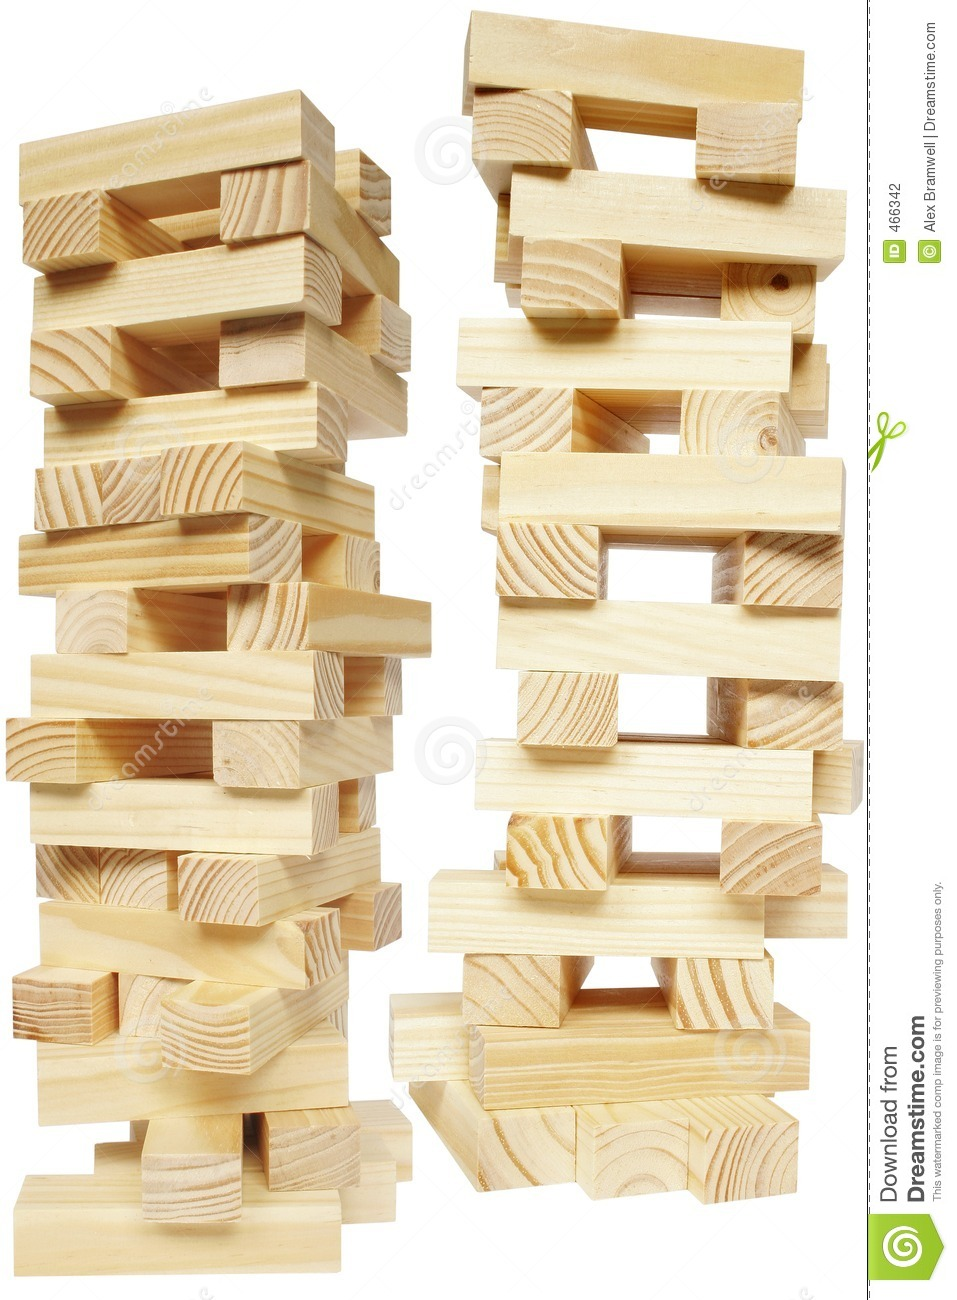 Download Wood Block Tower stock photo. Image of wooden, sawmill - 466342